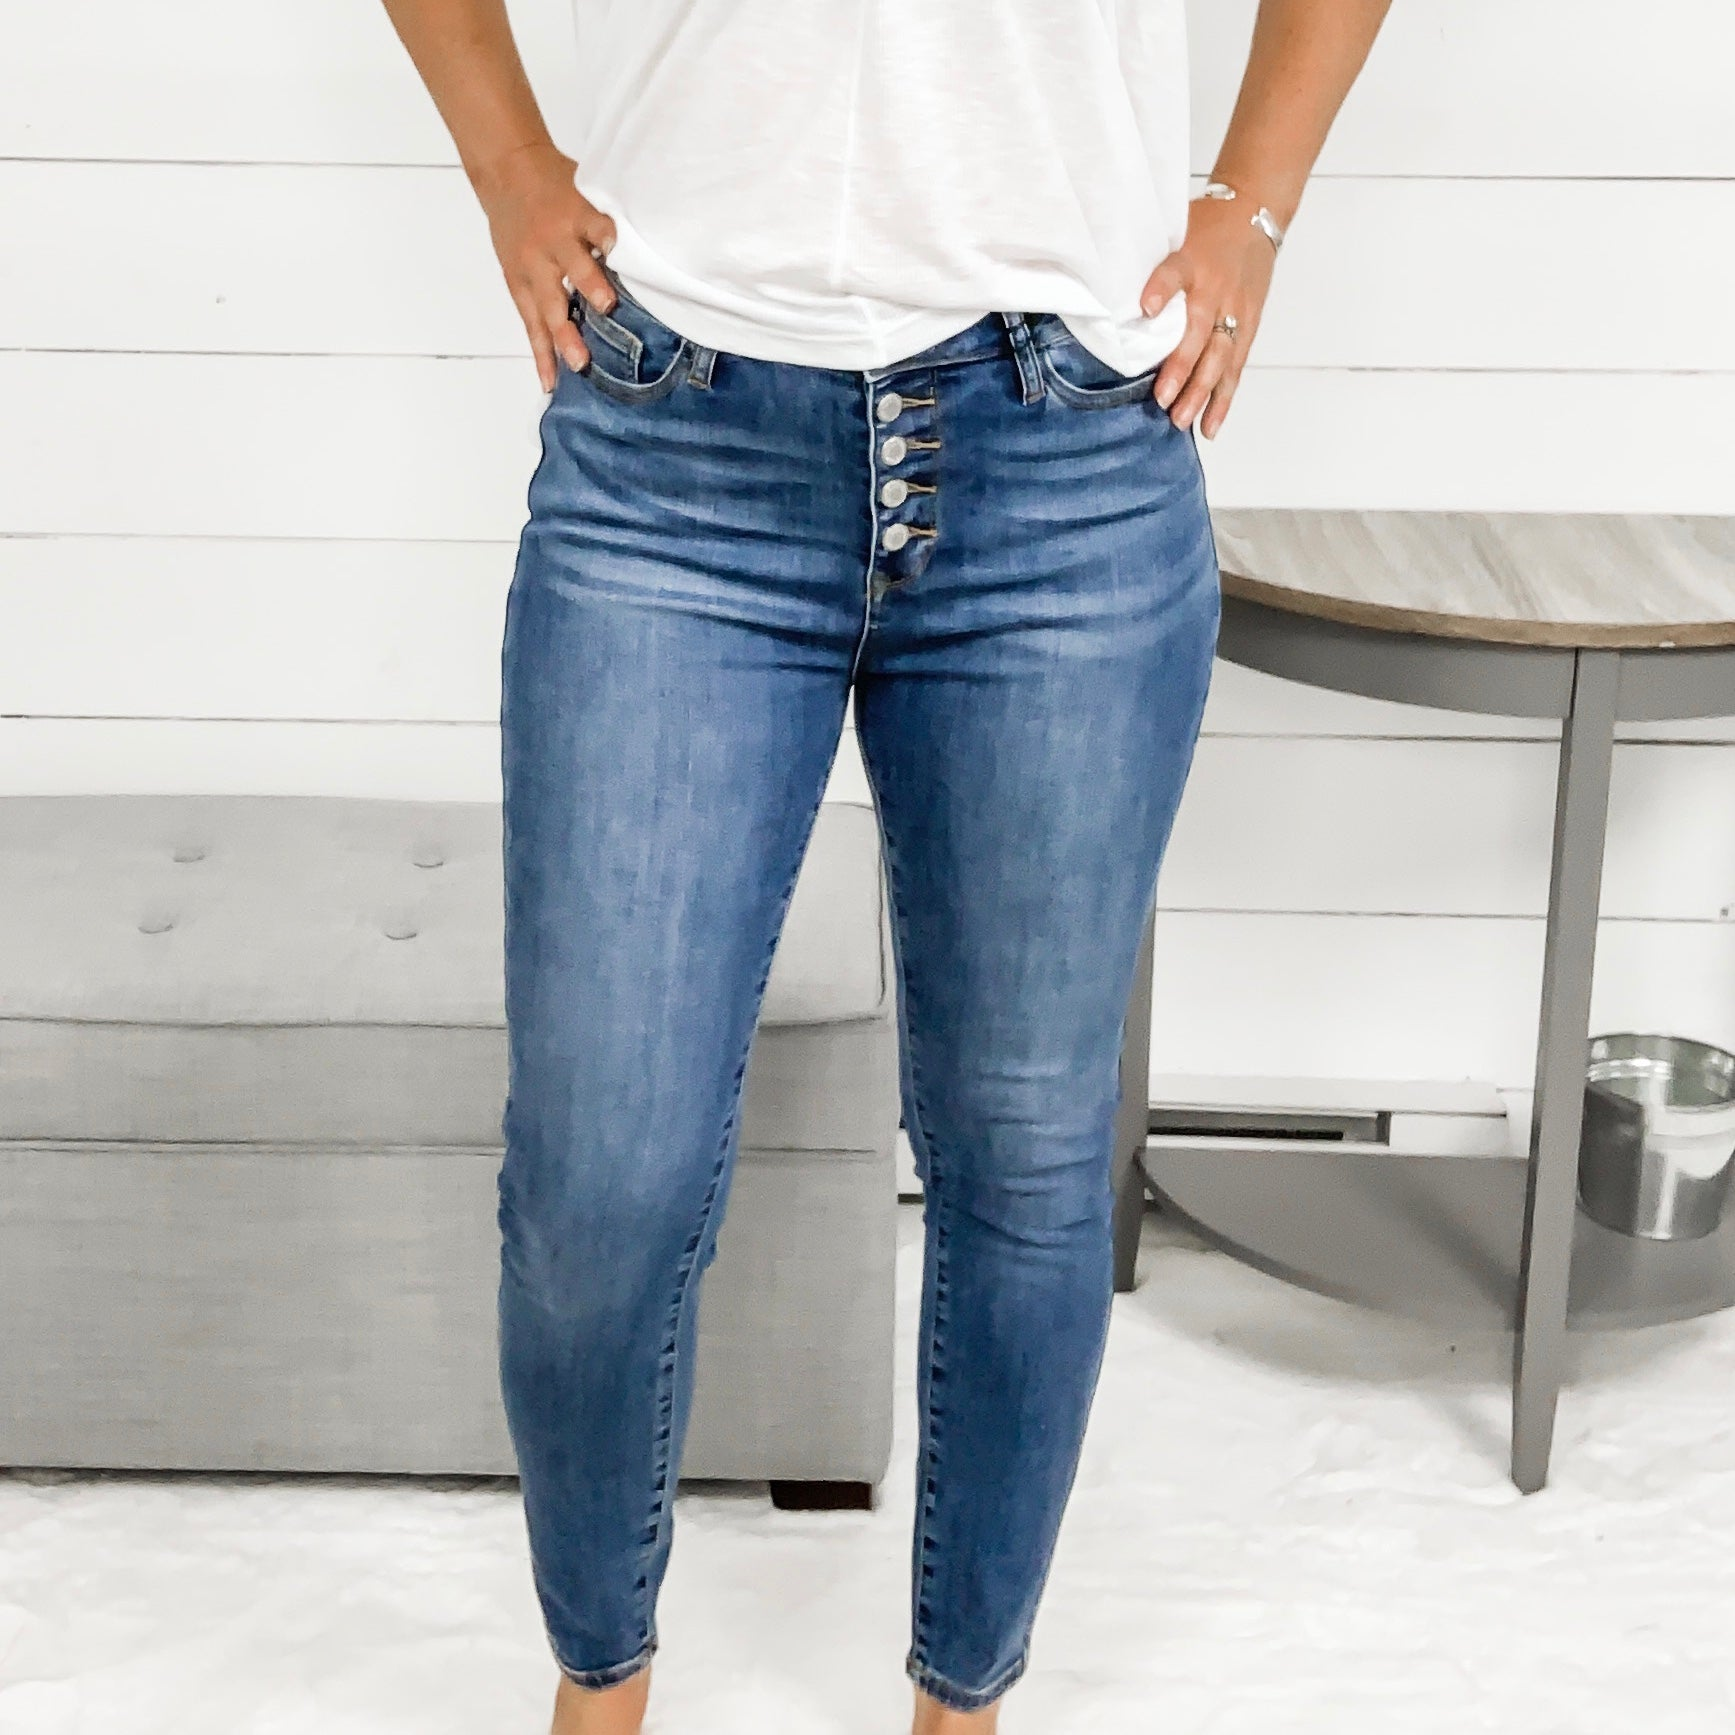 Judy Blue Button Fly Non-Distressed High Waist Skinny Jeans